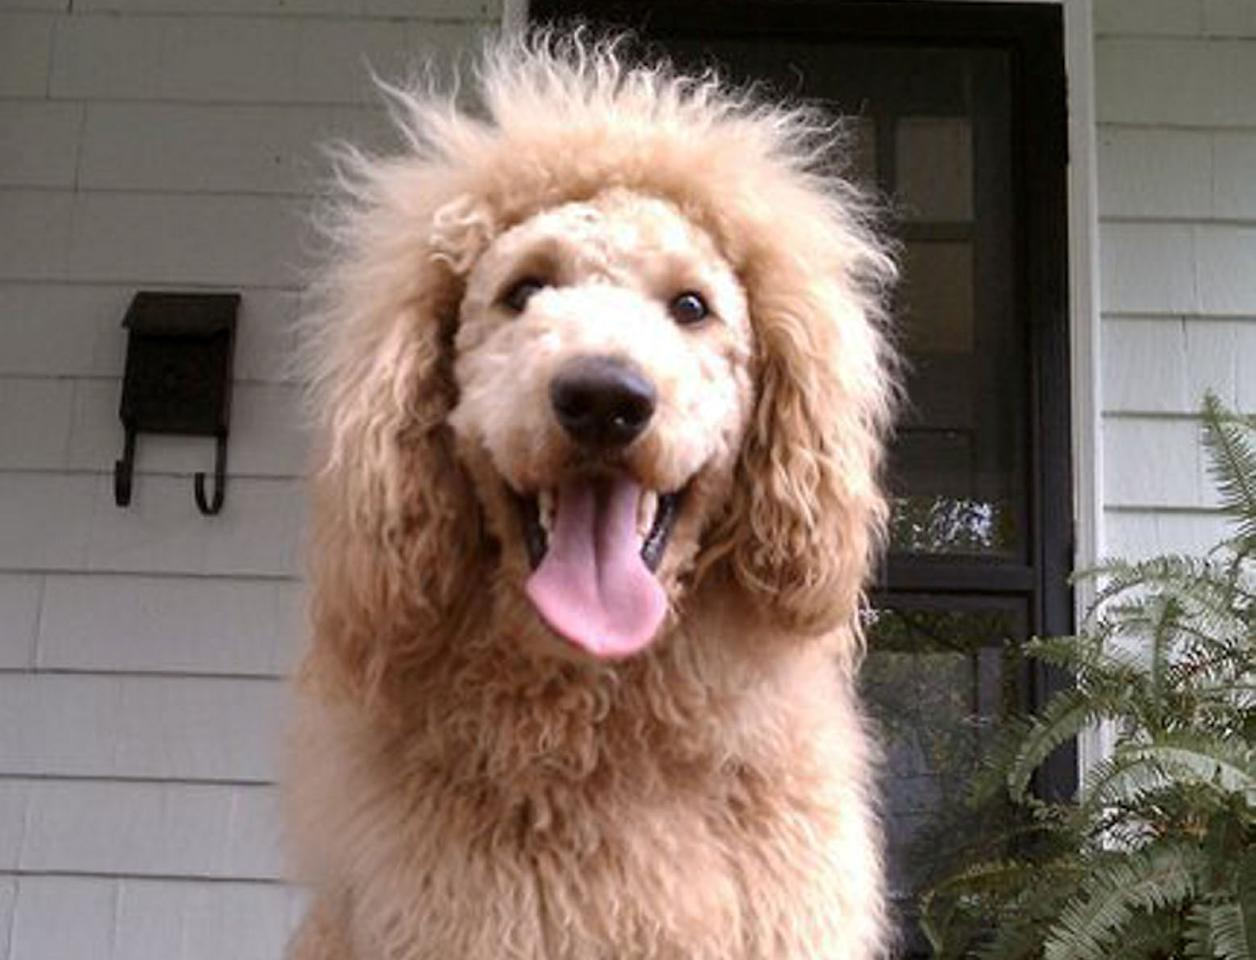 A 'lion' caused panic in Virginia, America. When police investigated it turned out to be 'Charles the Monarch' - a labradoodle (SWNS)